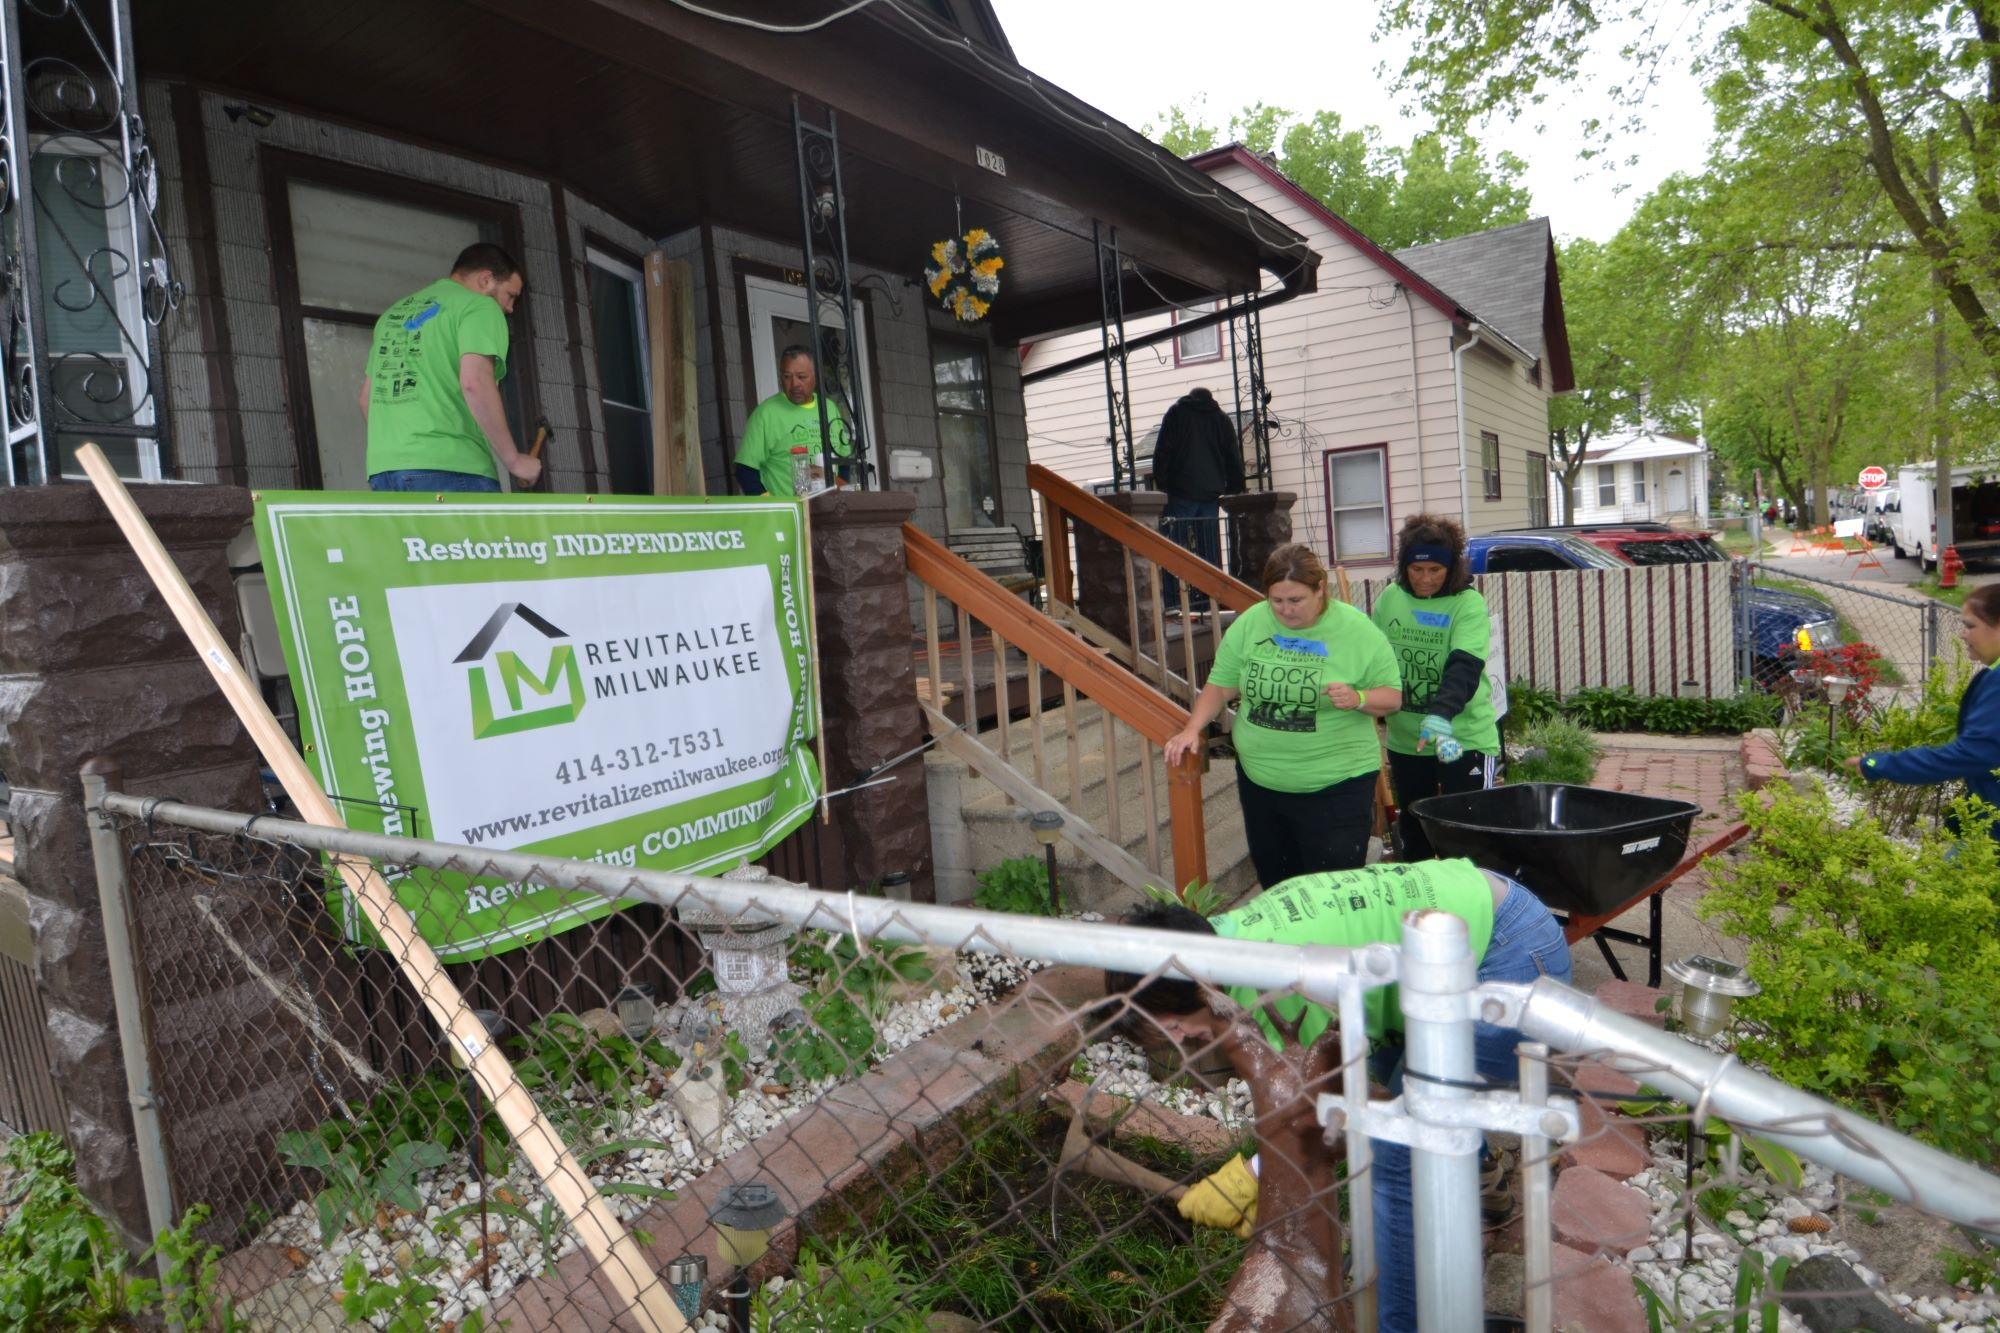 Volunteers repairing a porch and cleaning front yard.